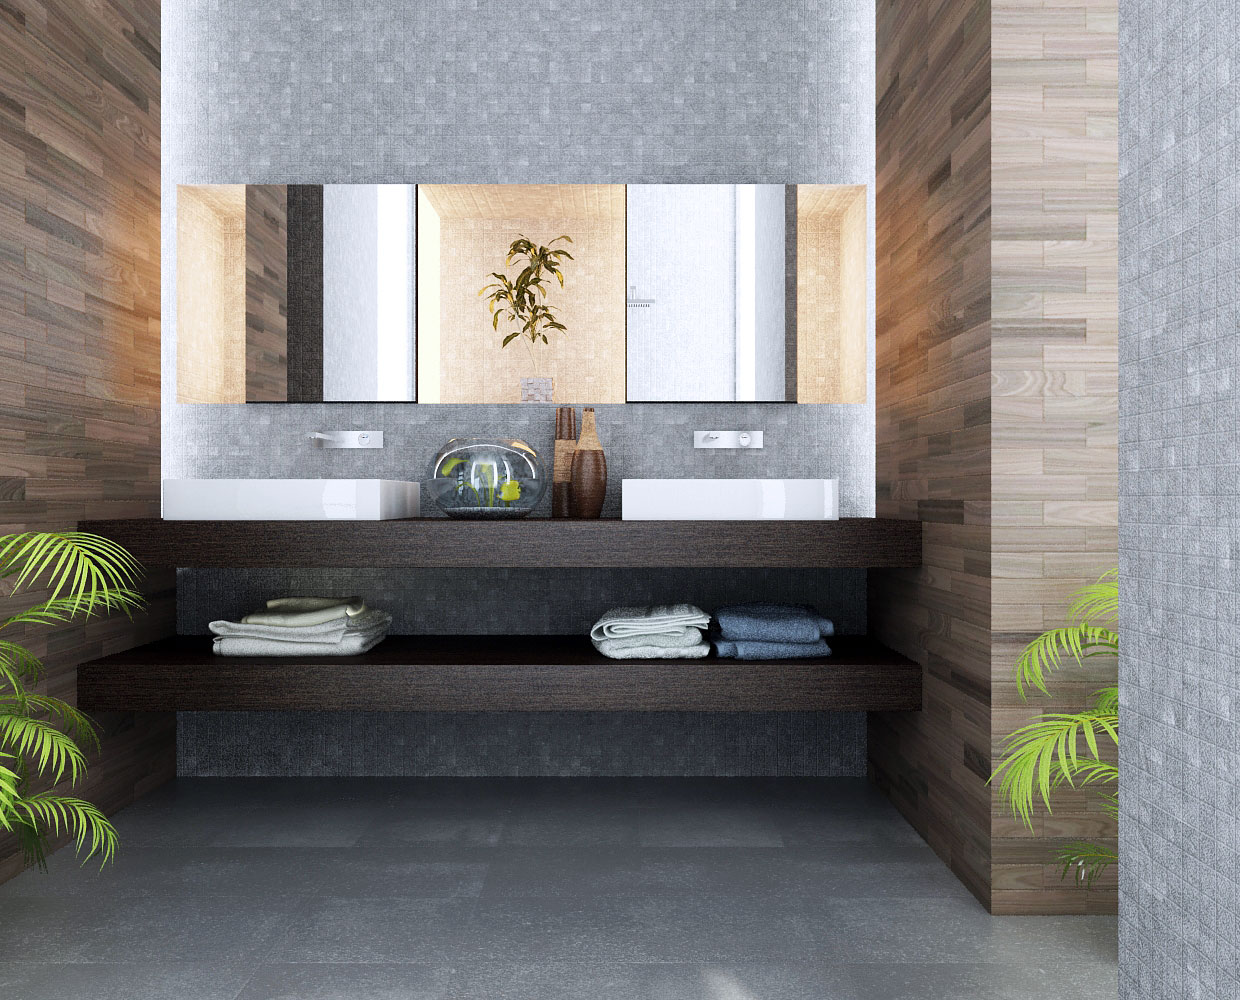 Outstanding Modern Bathroom Design Ideas 1240 x 1000 · 298 kB · jpeg